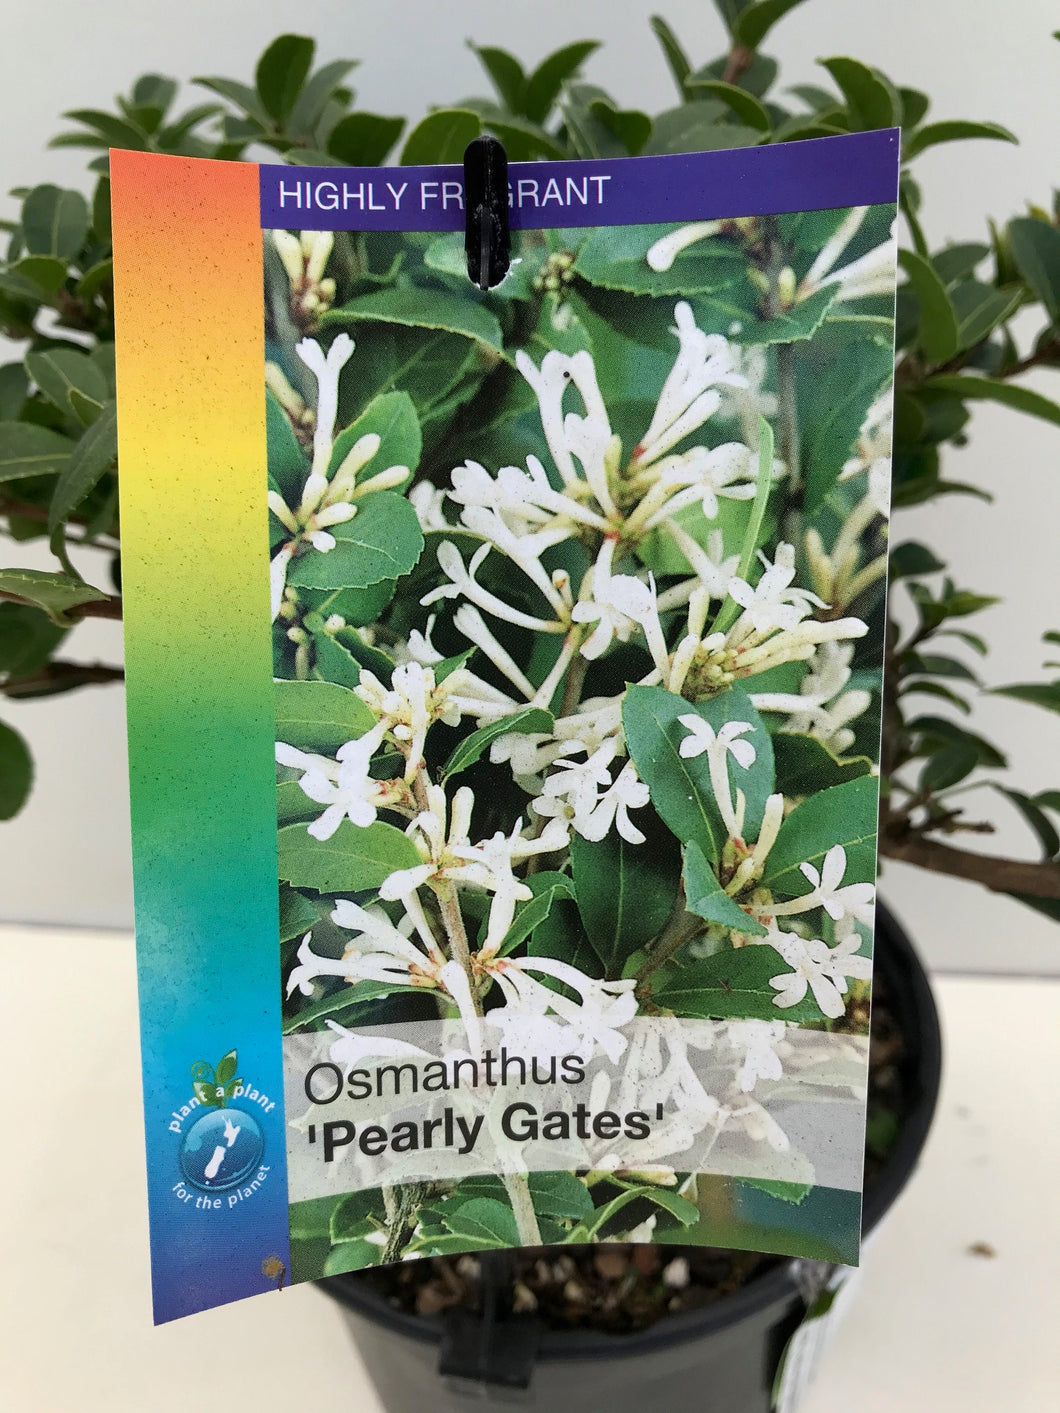 Osmanthus Pearly Gates